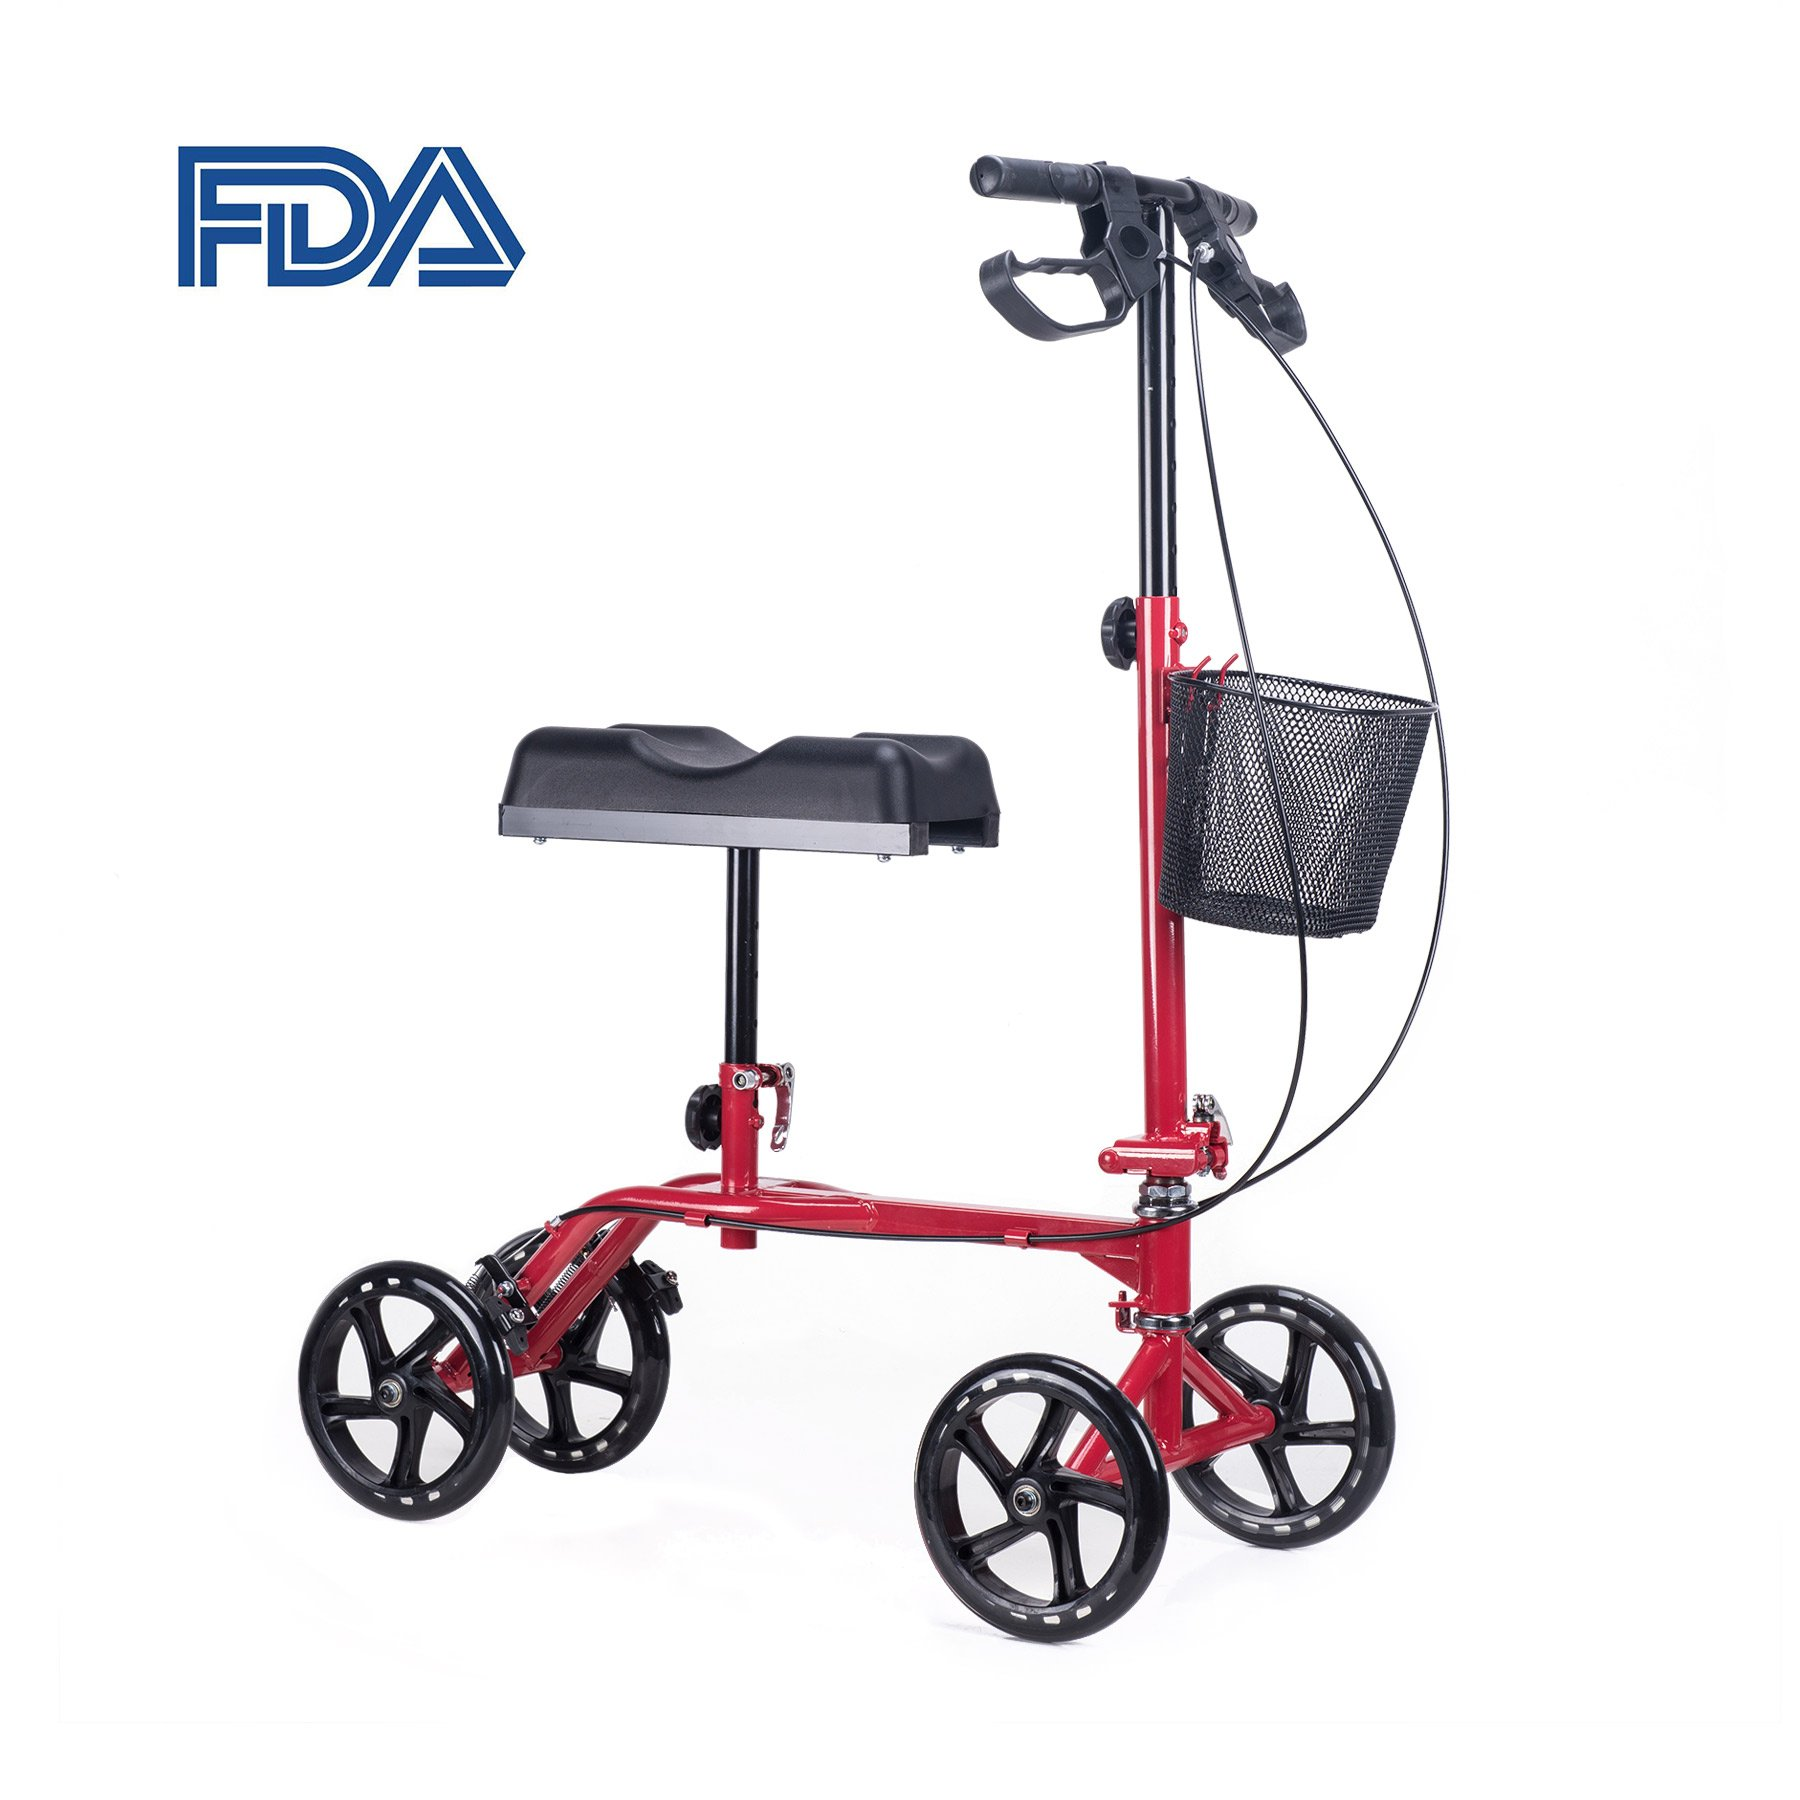 CO-Z Upgraded Dual Brake Steerable Knee Scooter with Ergonomic Cushion, Foldable Portable Knee Rover Walker for Adult Kids Foot Ankle Leg Injury, Red Adjustable 8'' Wheel Rolling Mobility Crutches